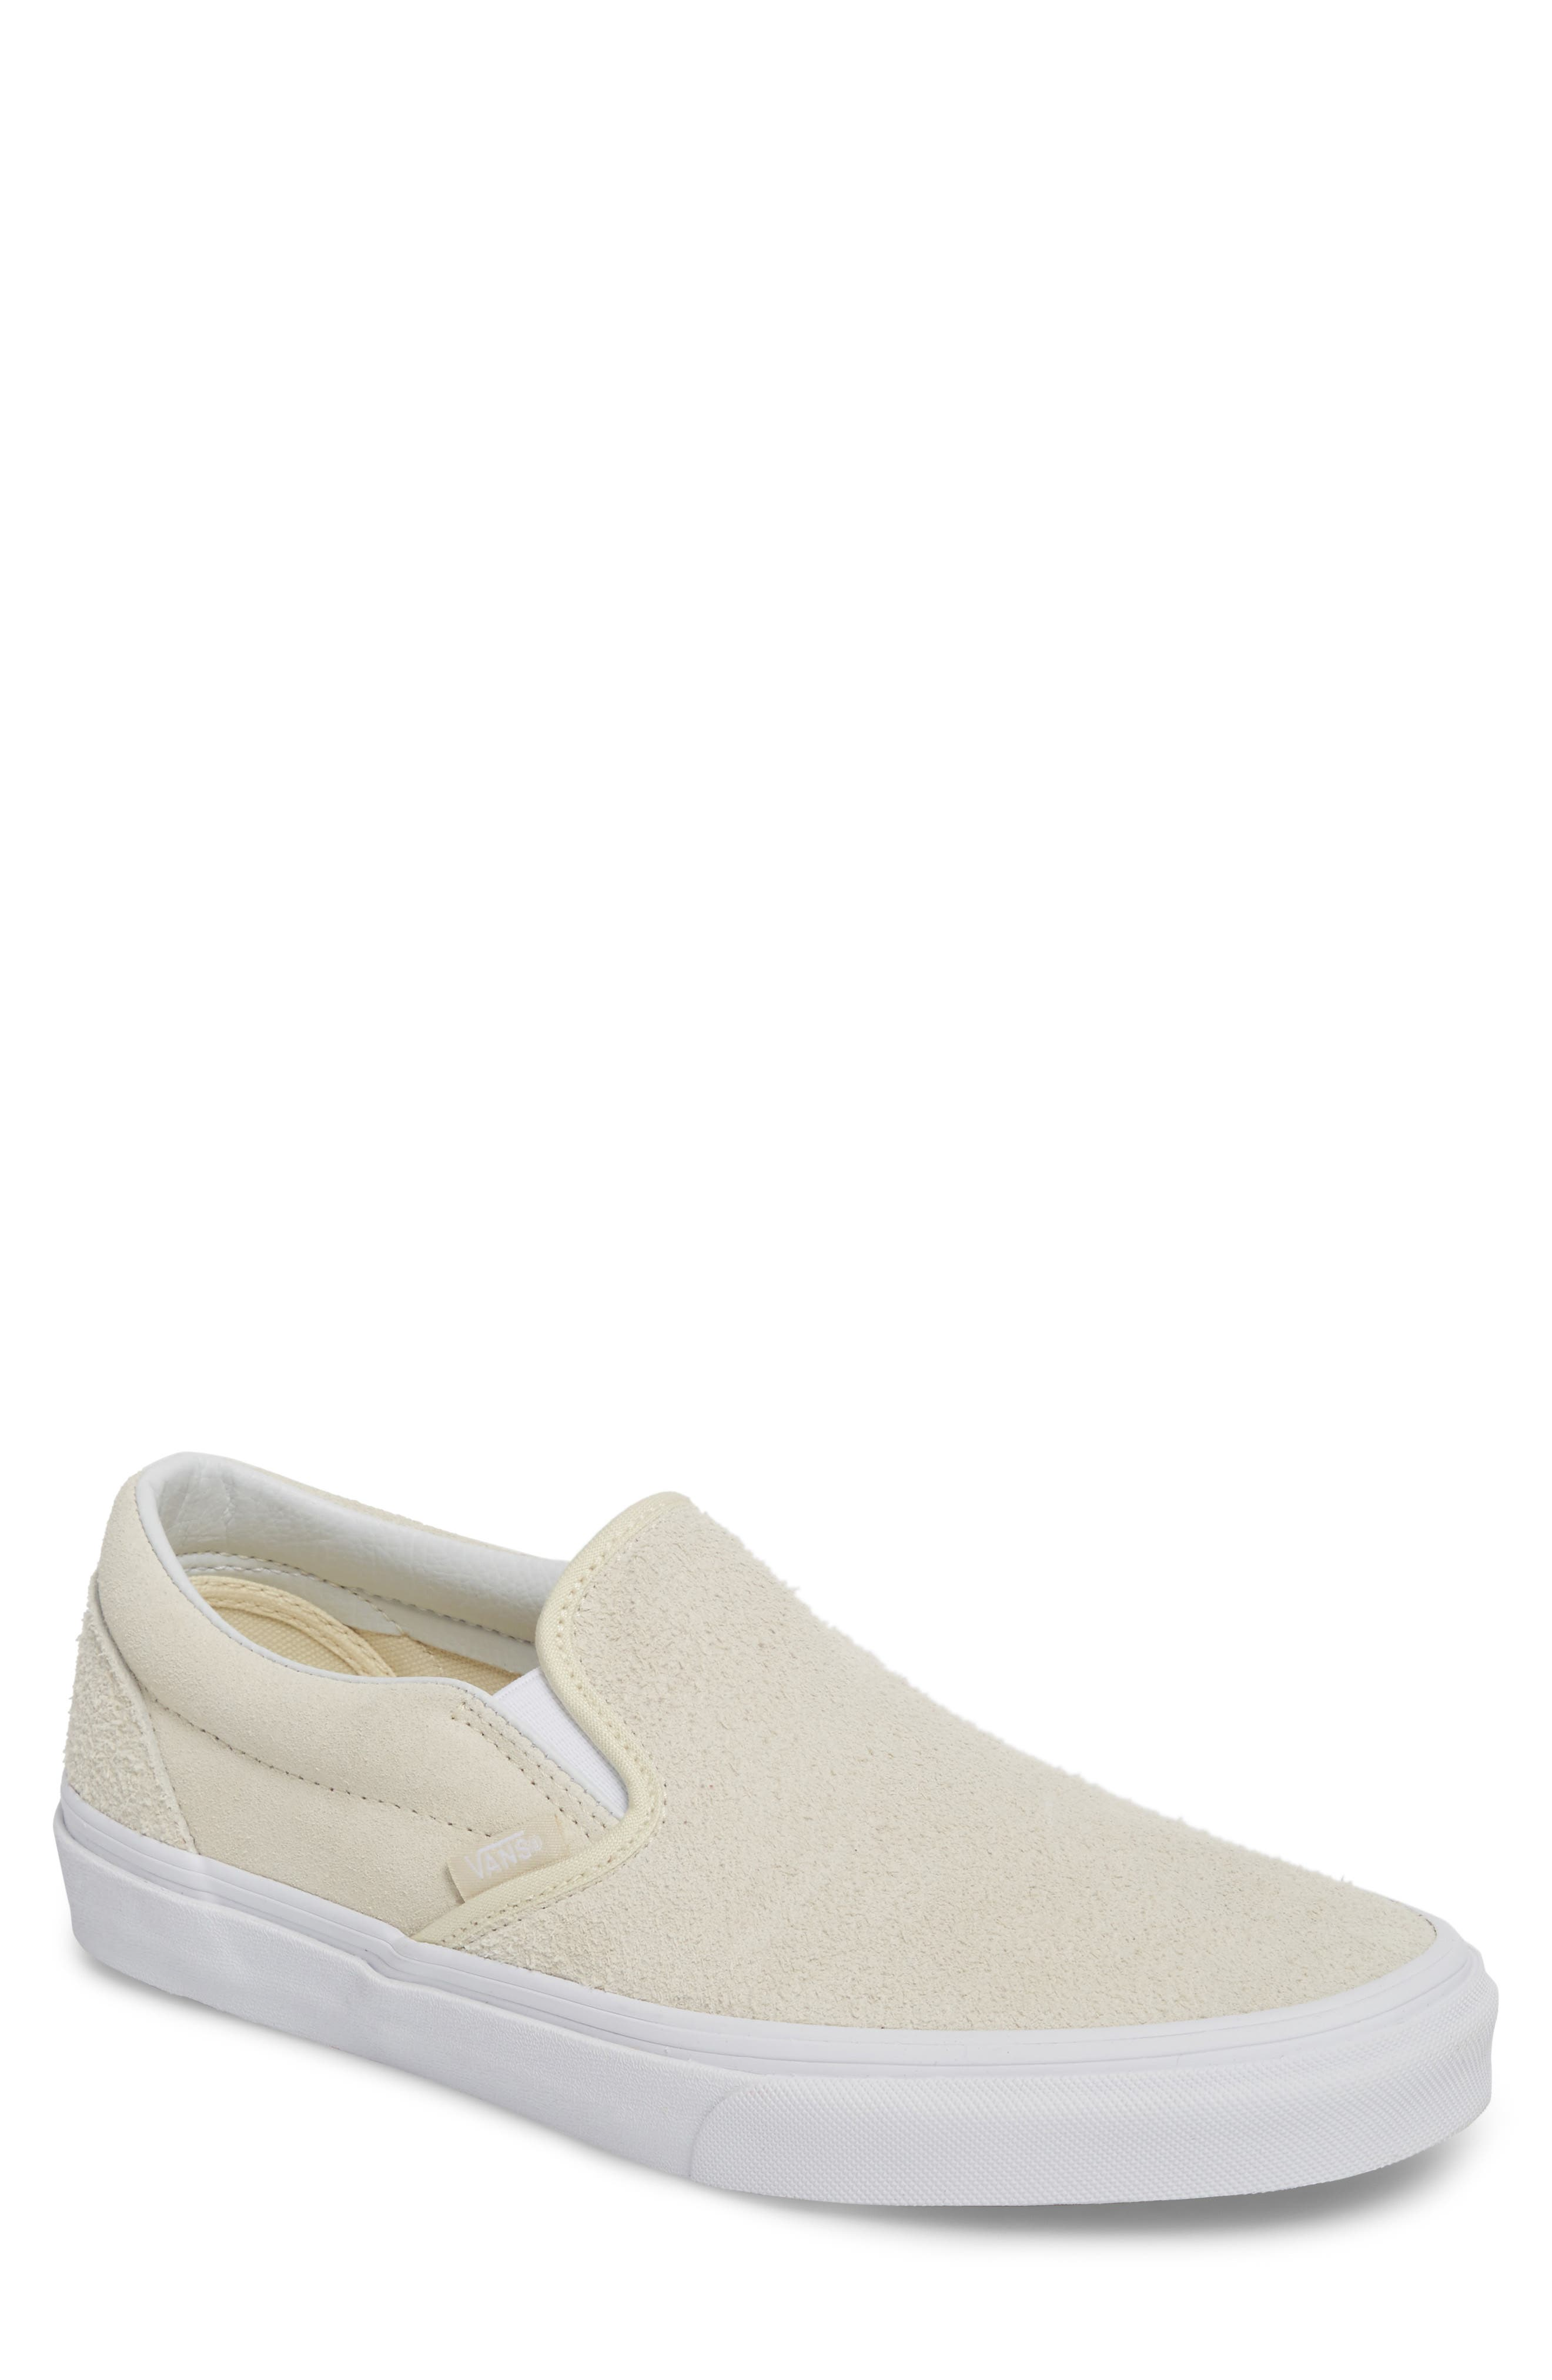 Classic Hairy Suede Slip-On Sneaker,                             Main thumbnail 1, color,                             Turtledove Leather